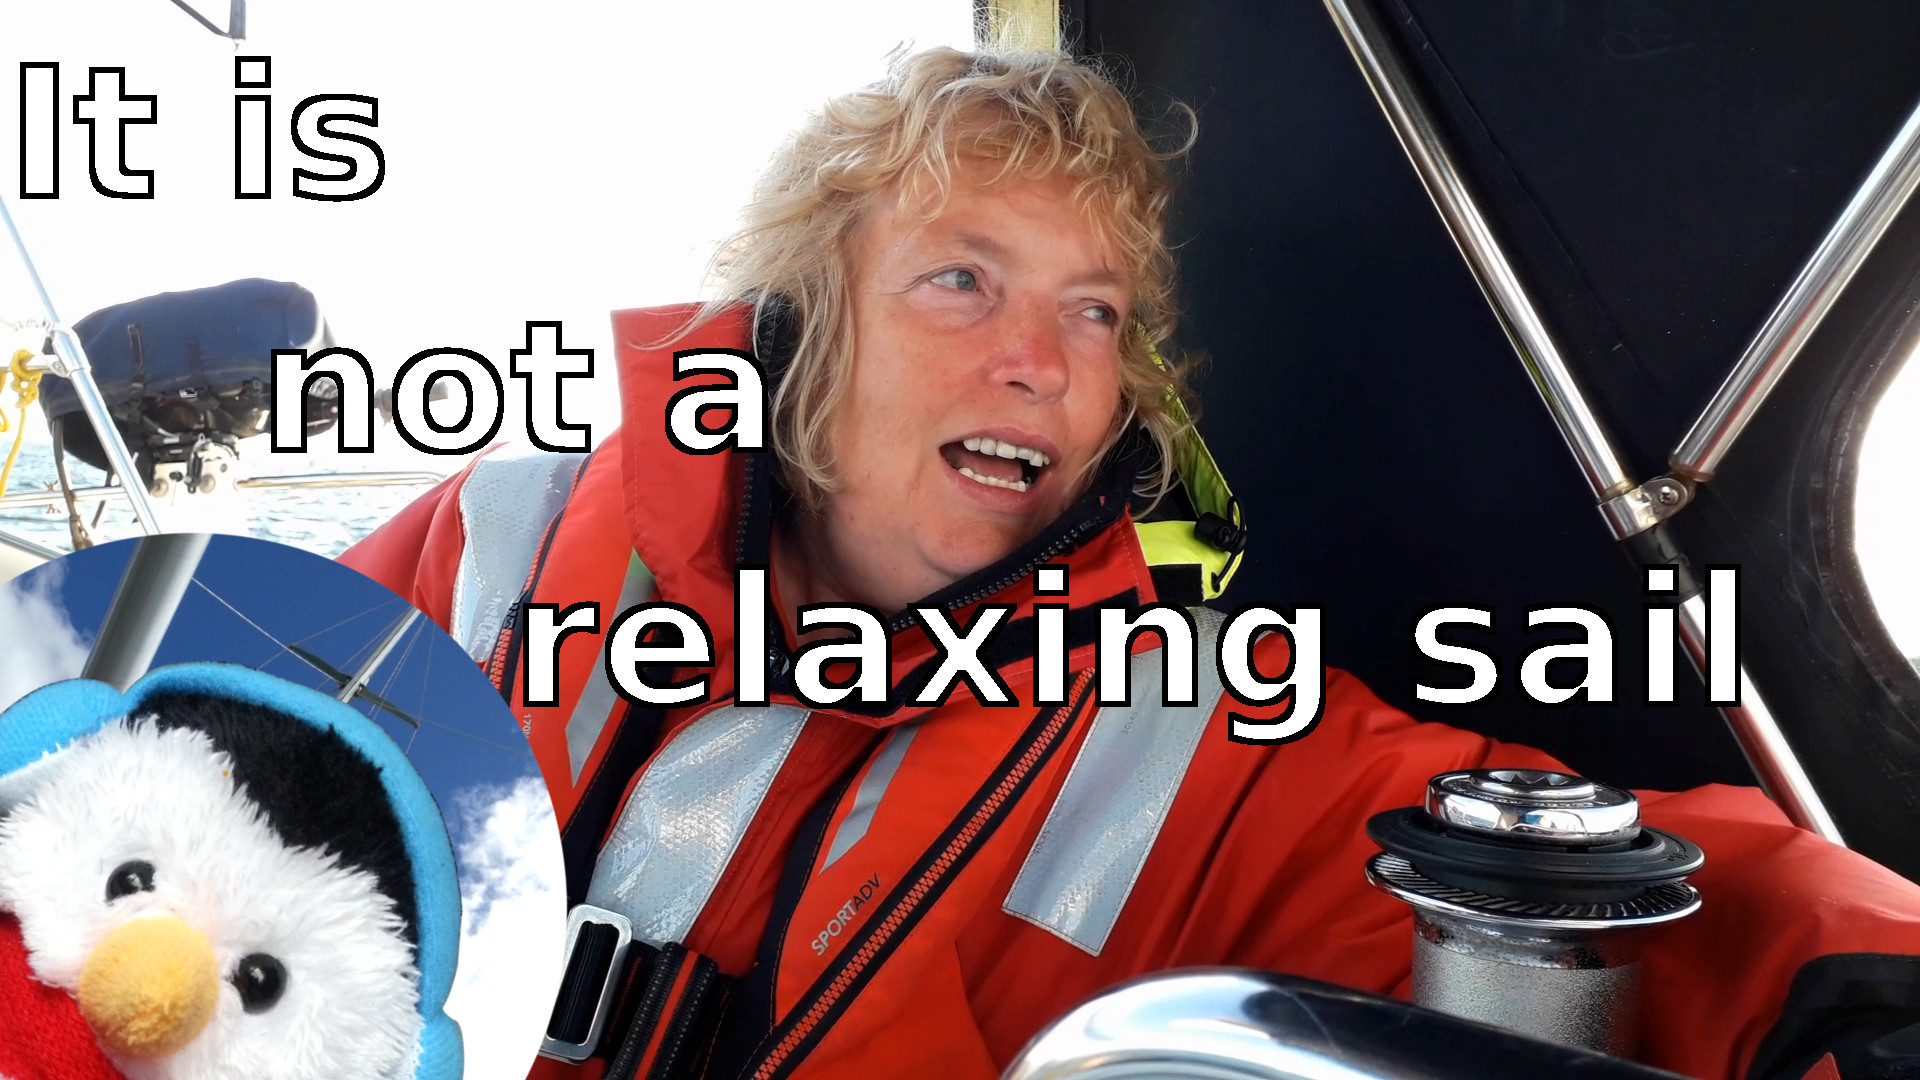 """Watch our """"It is not a relaxing sail"""" video and add comments"""